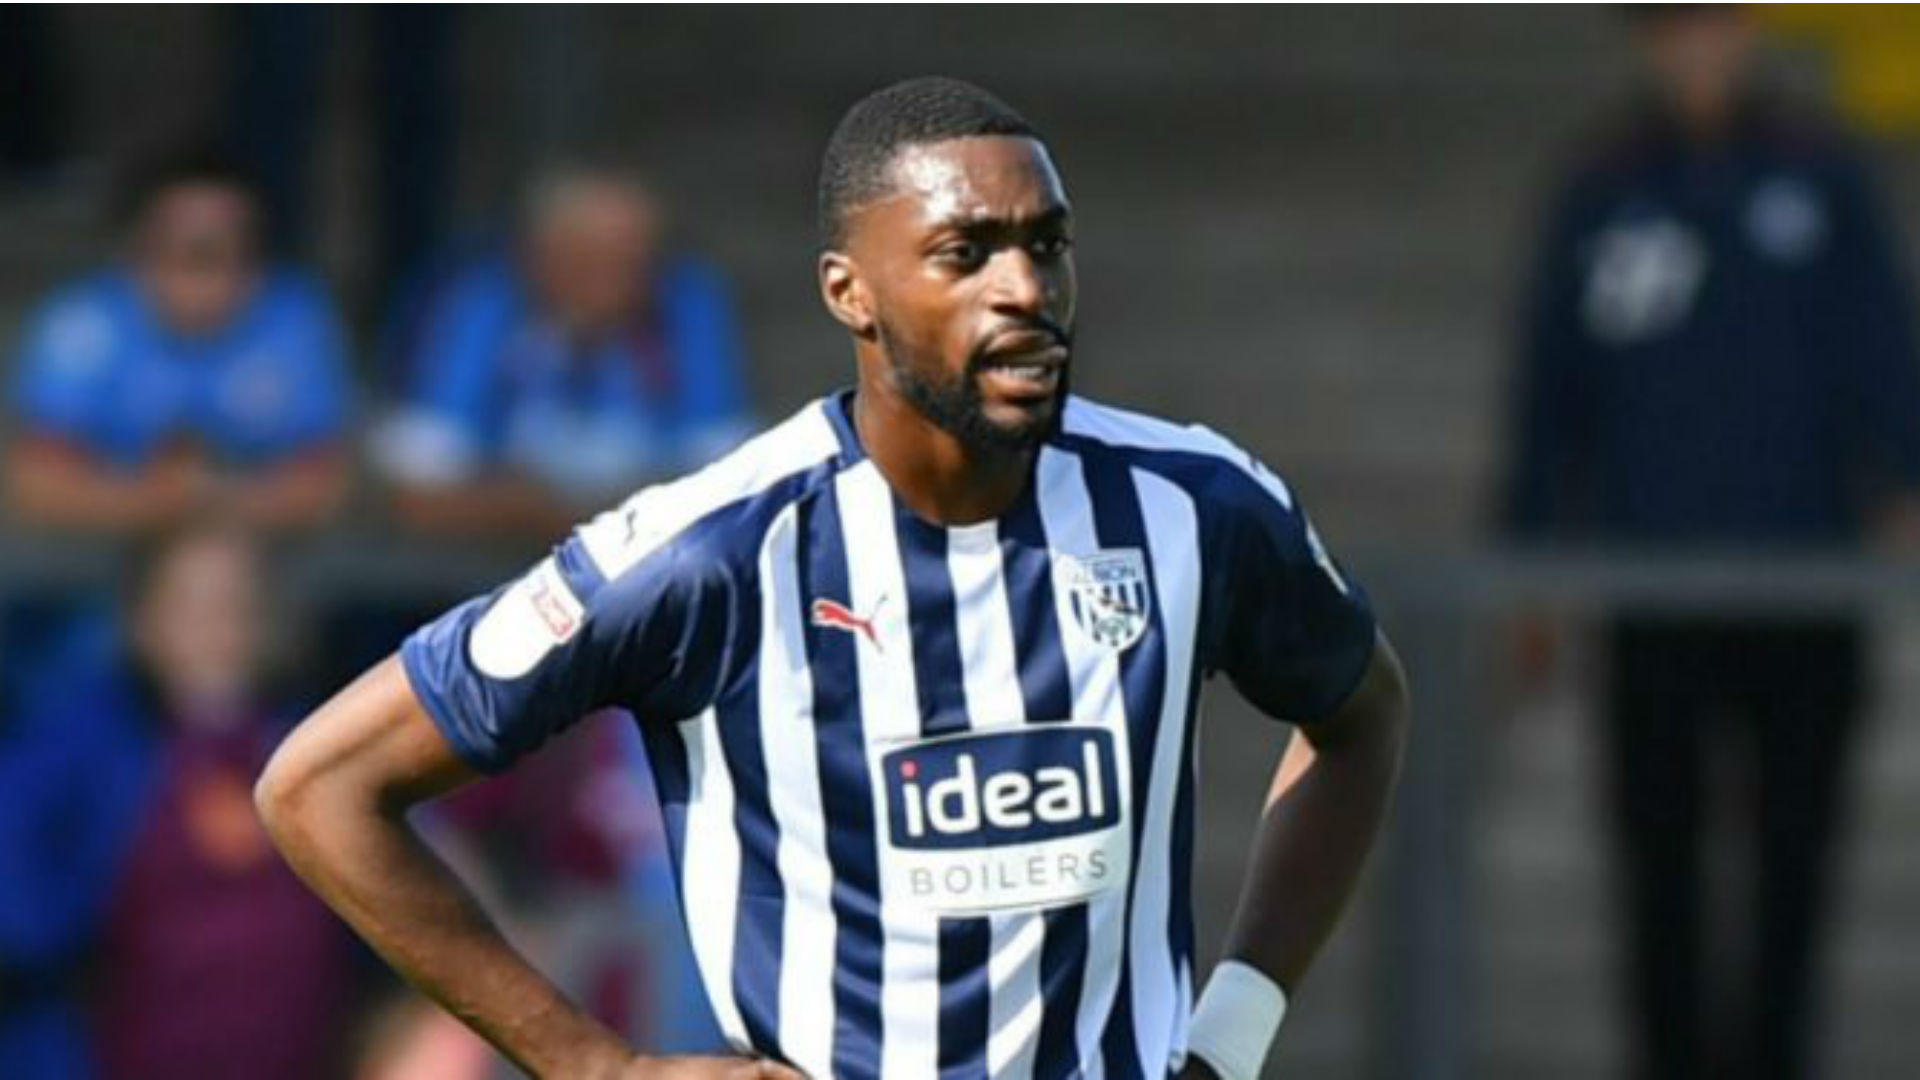 West Brom's Ajayi: Why I decided against joining Ajax